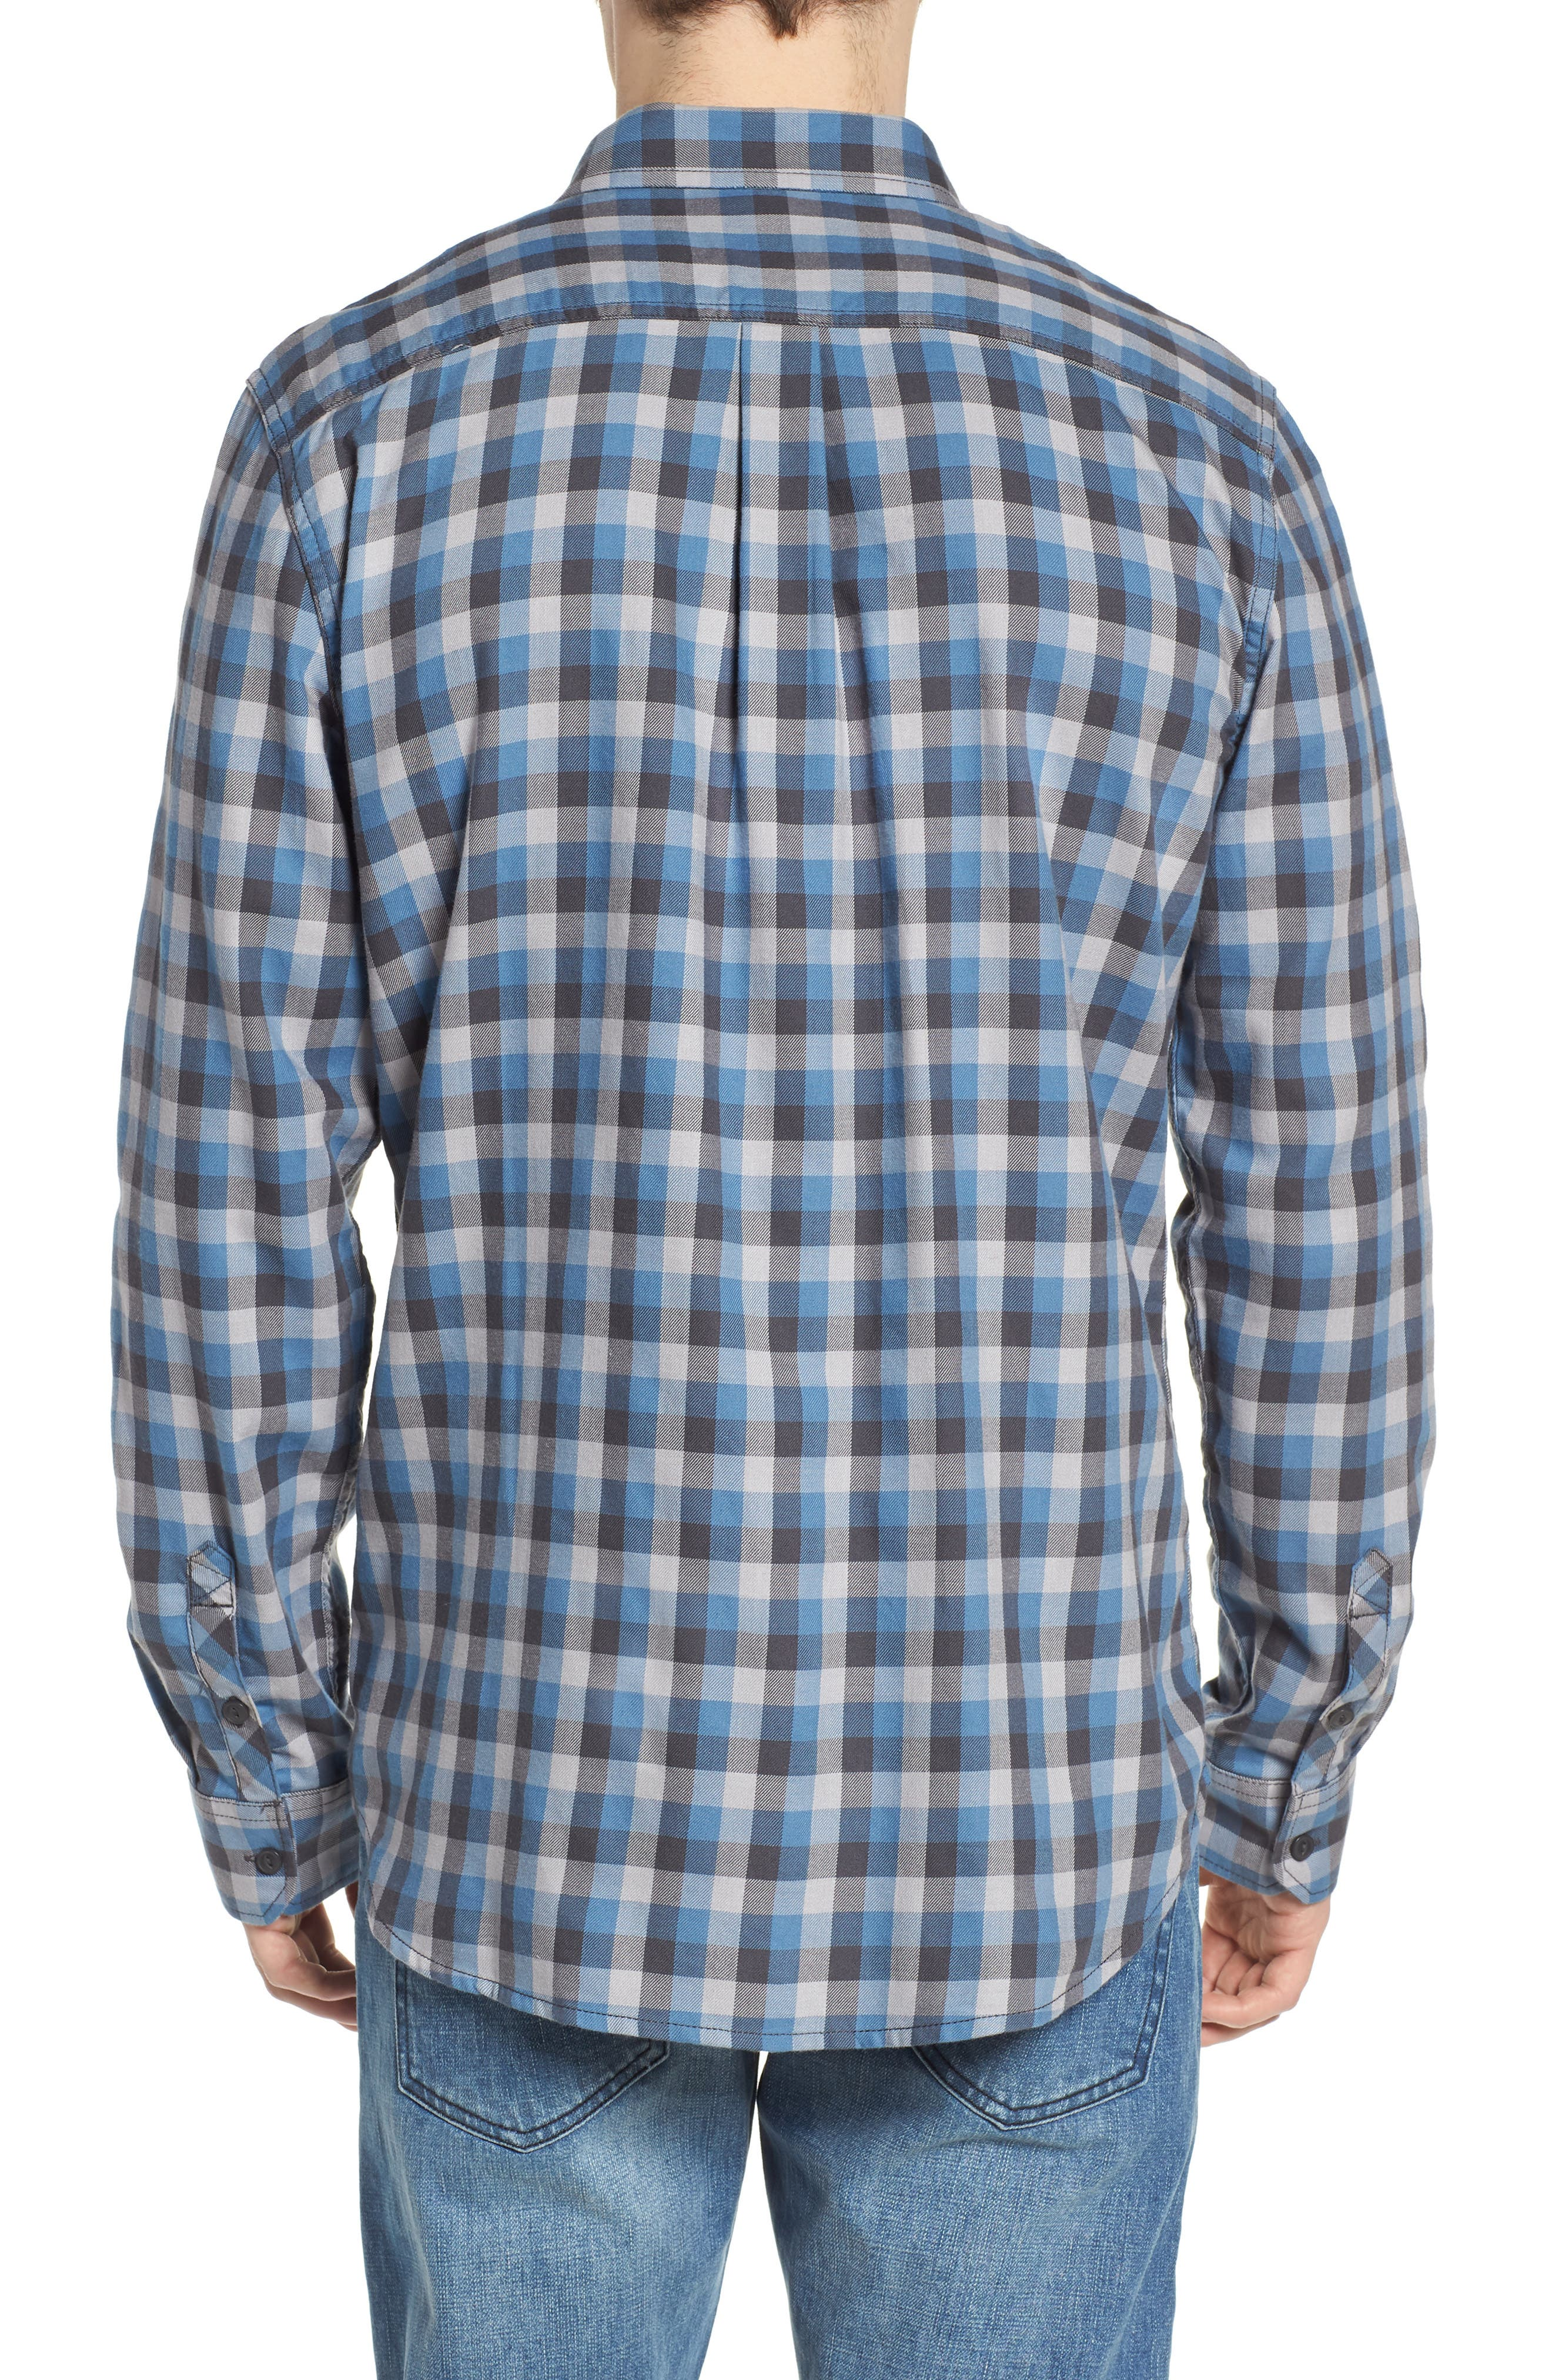 Alameda II Plaid Flannel Shirt,                             Alternate thumbnail 2, color,                             Asphalt/ Copen Blue